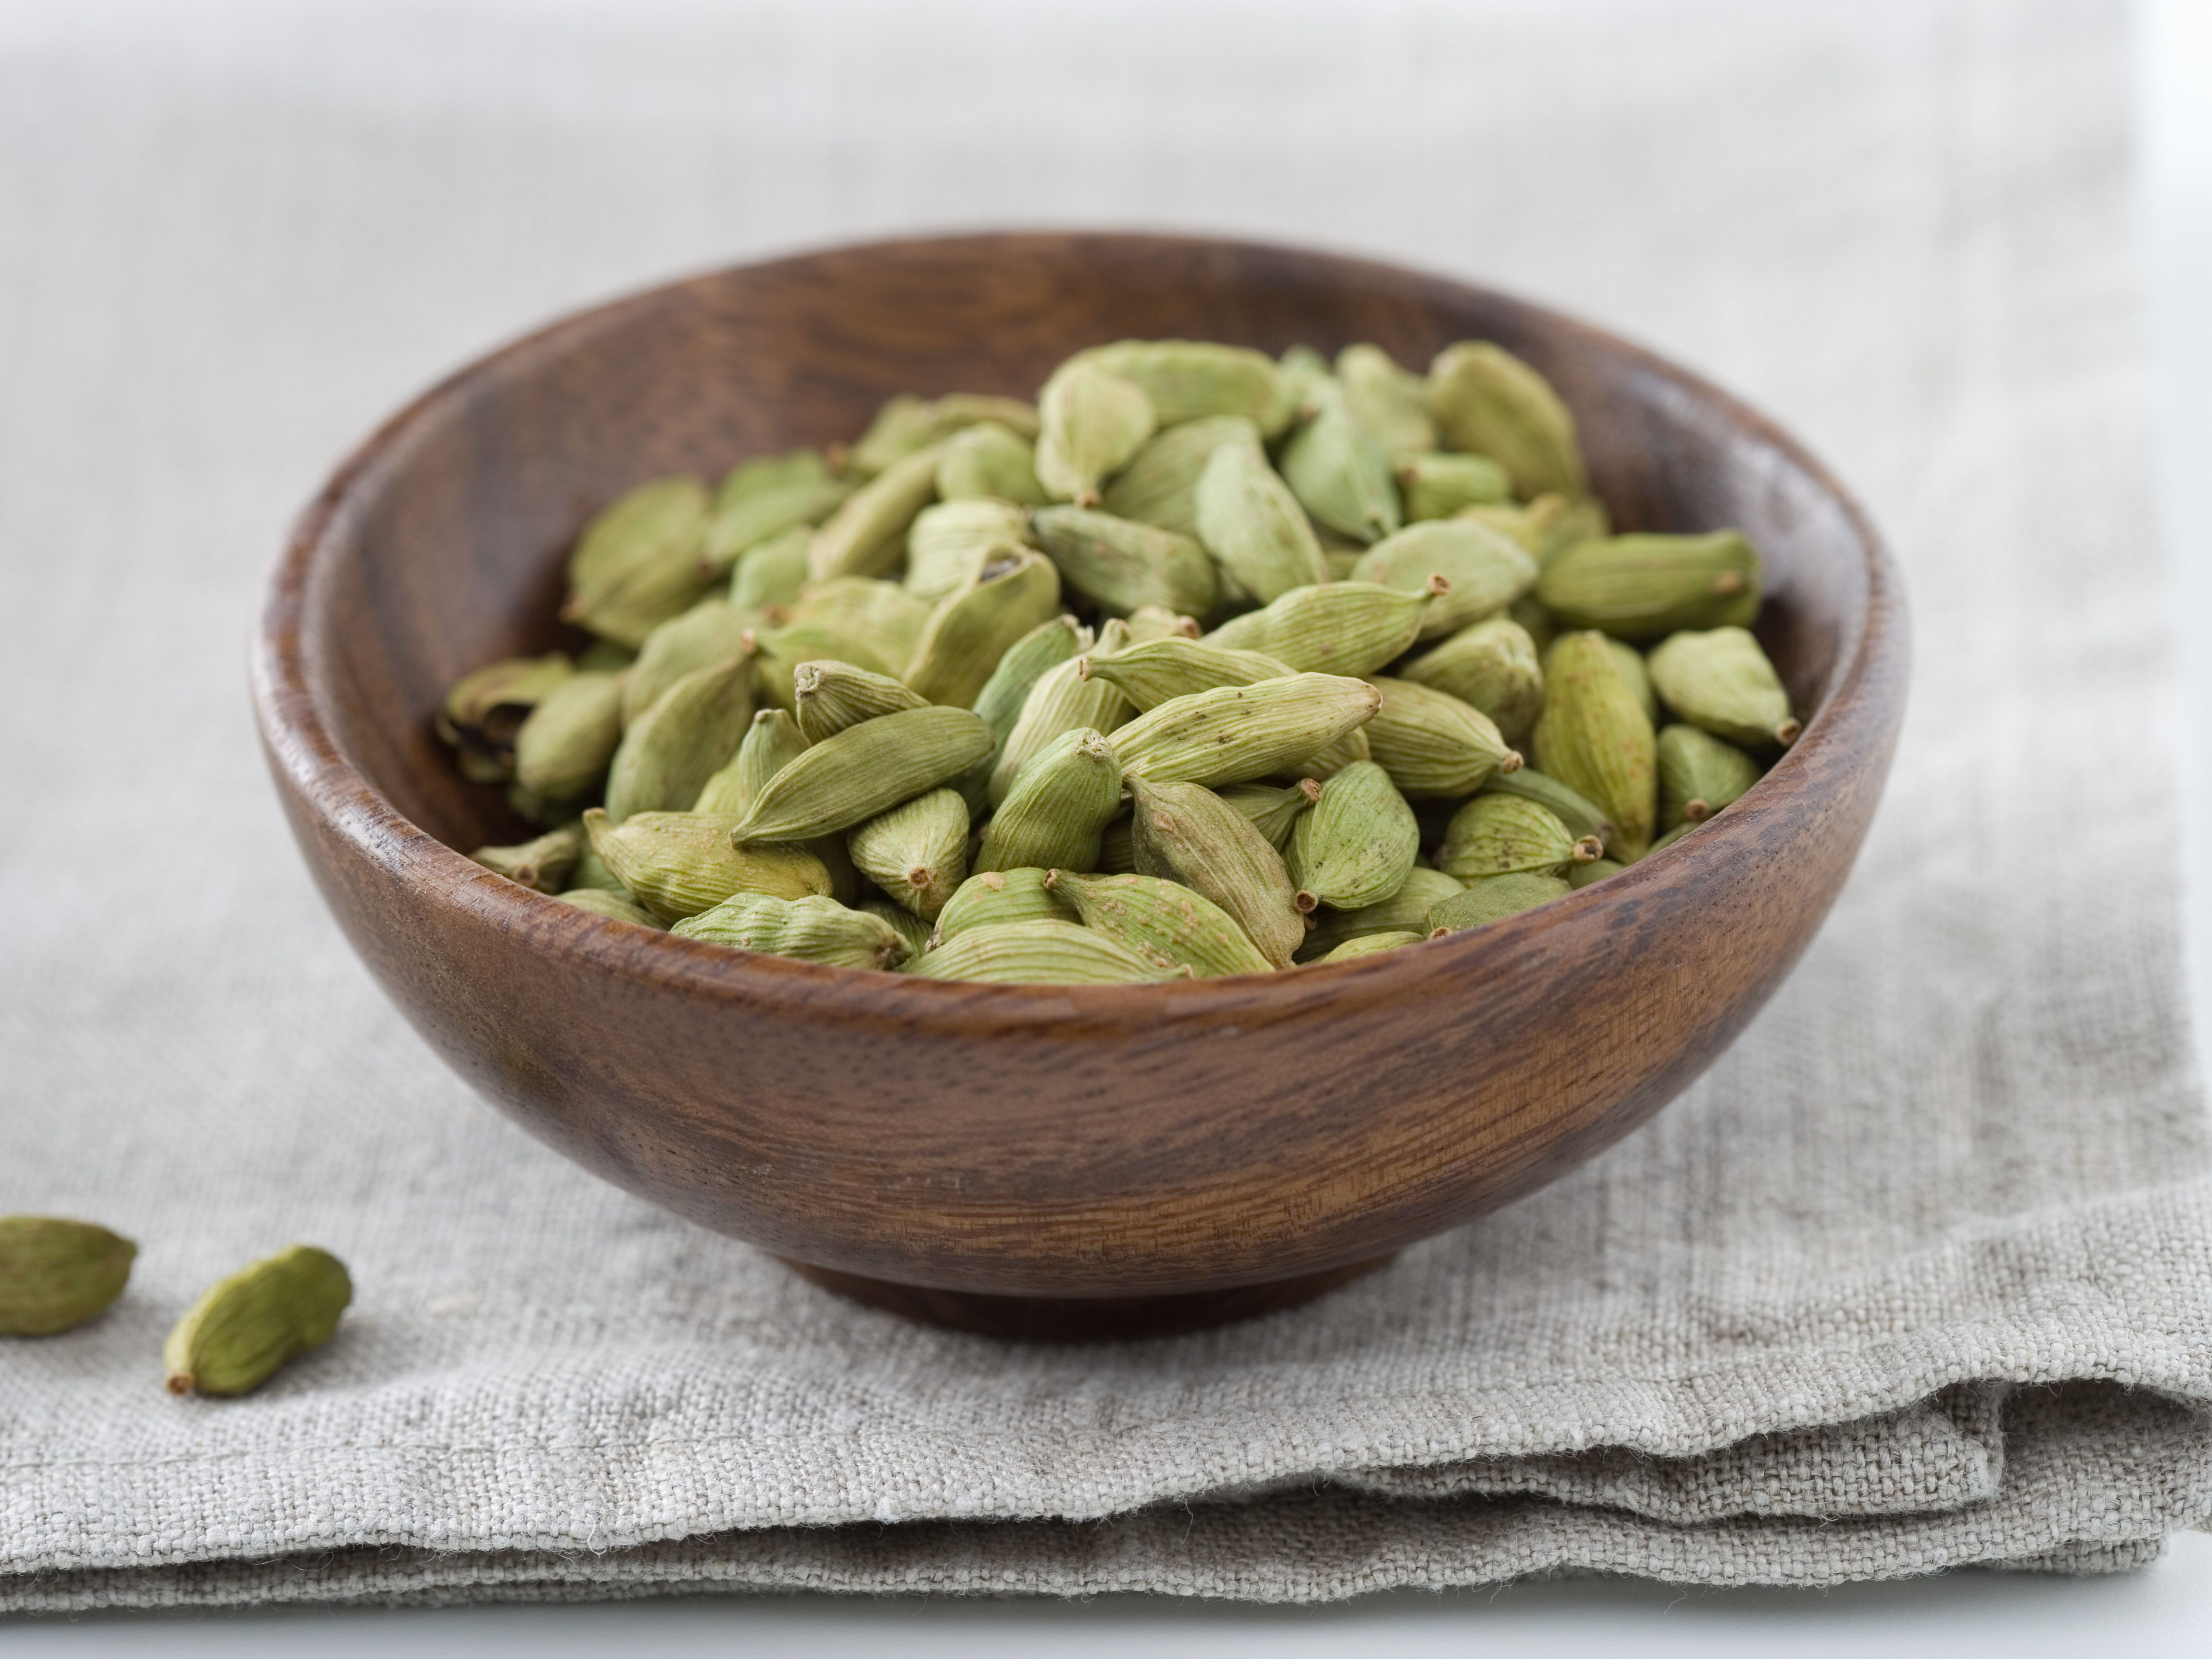 Substitutes For Cardamom In Recipes